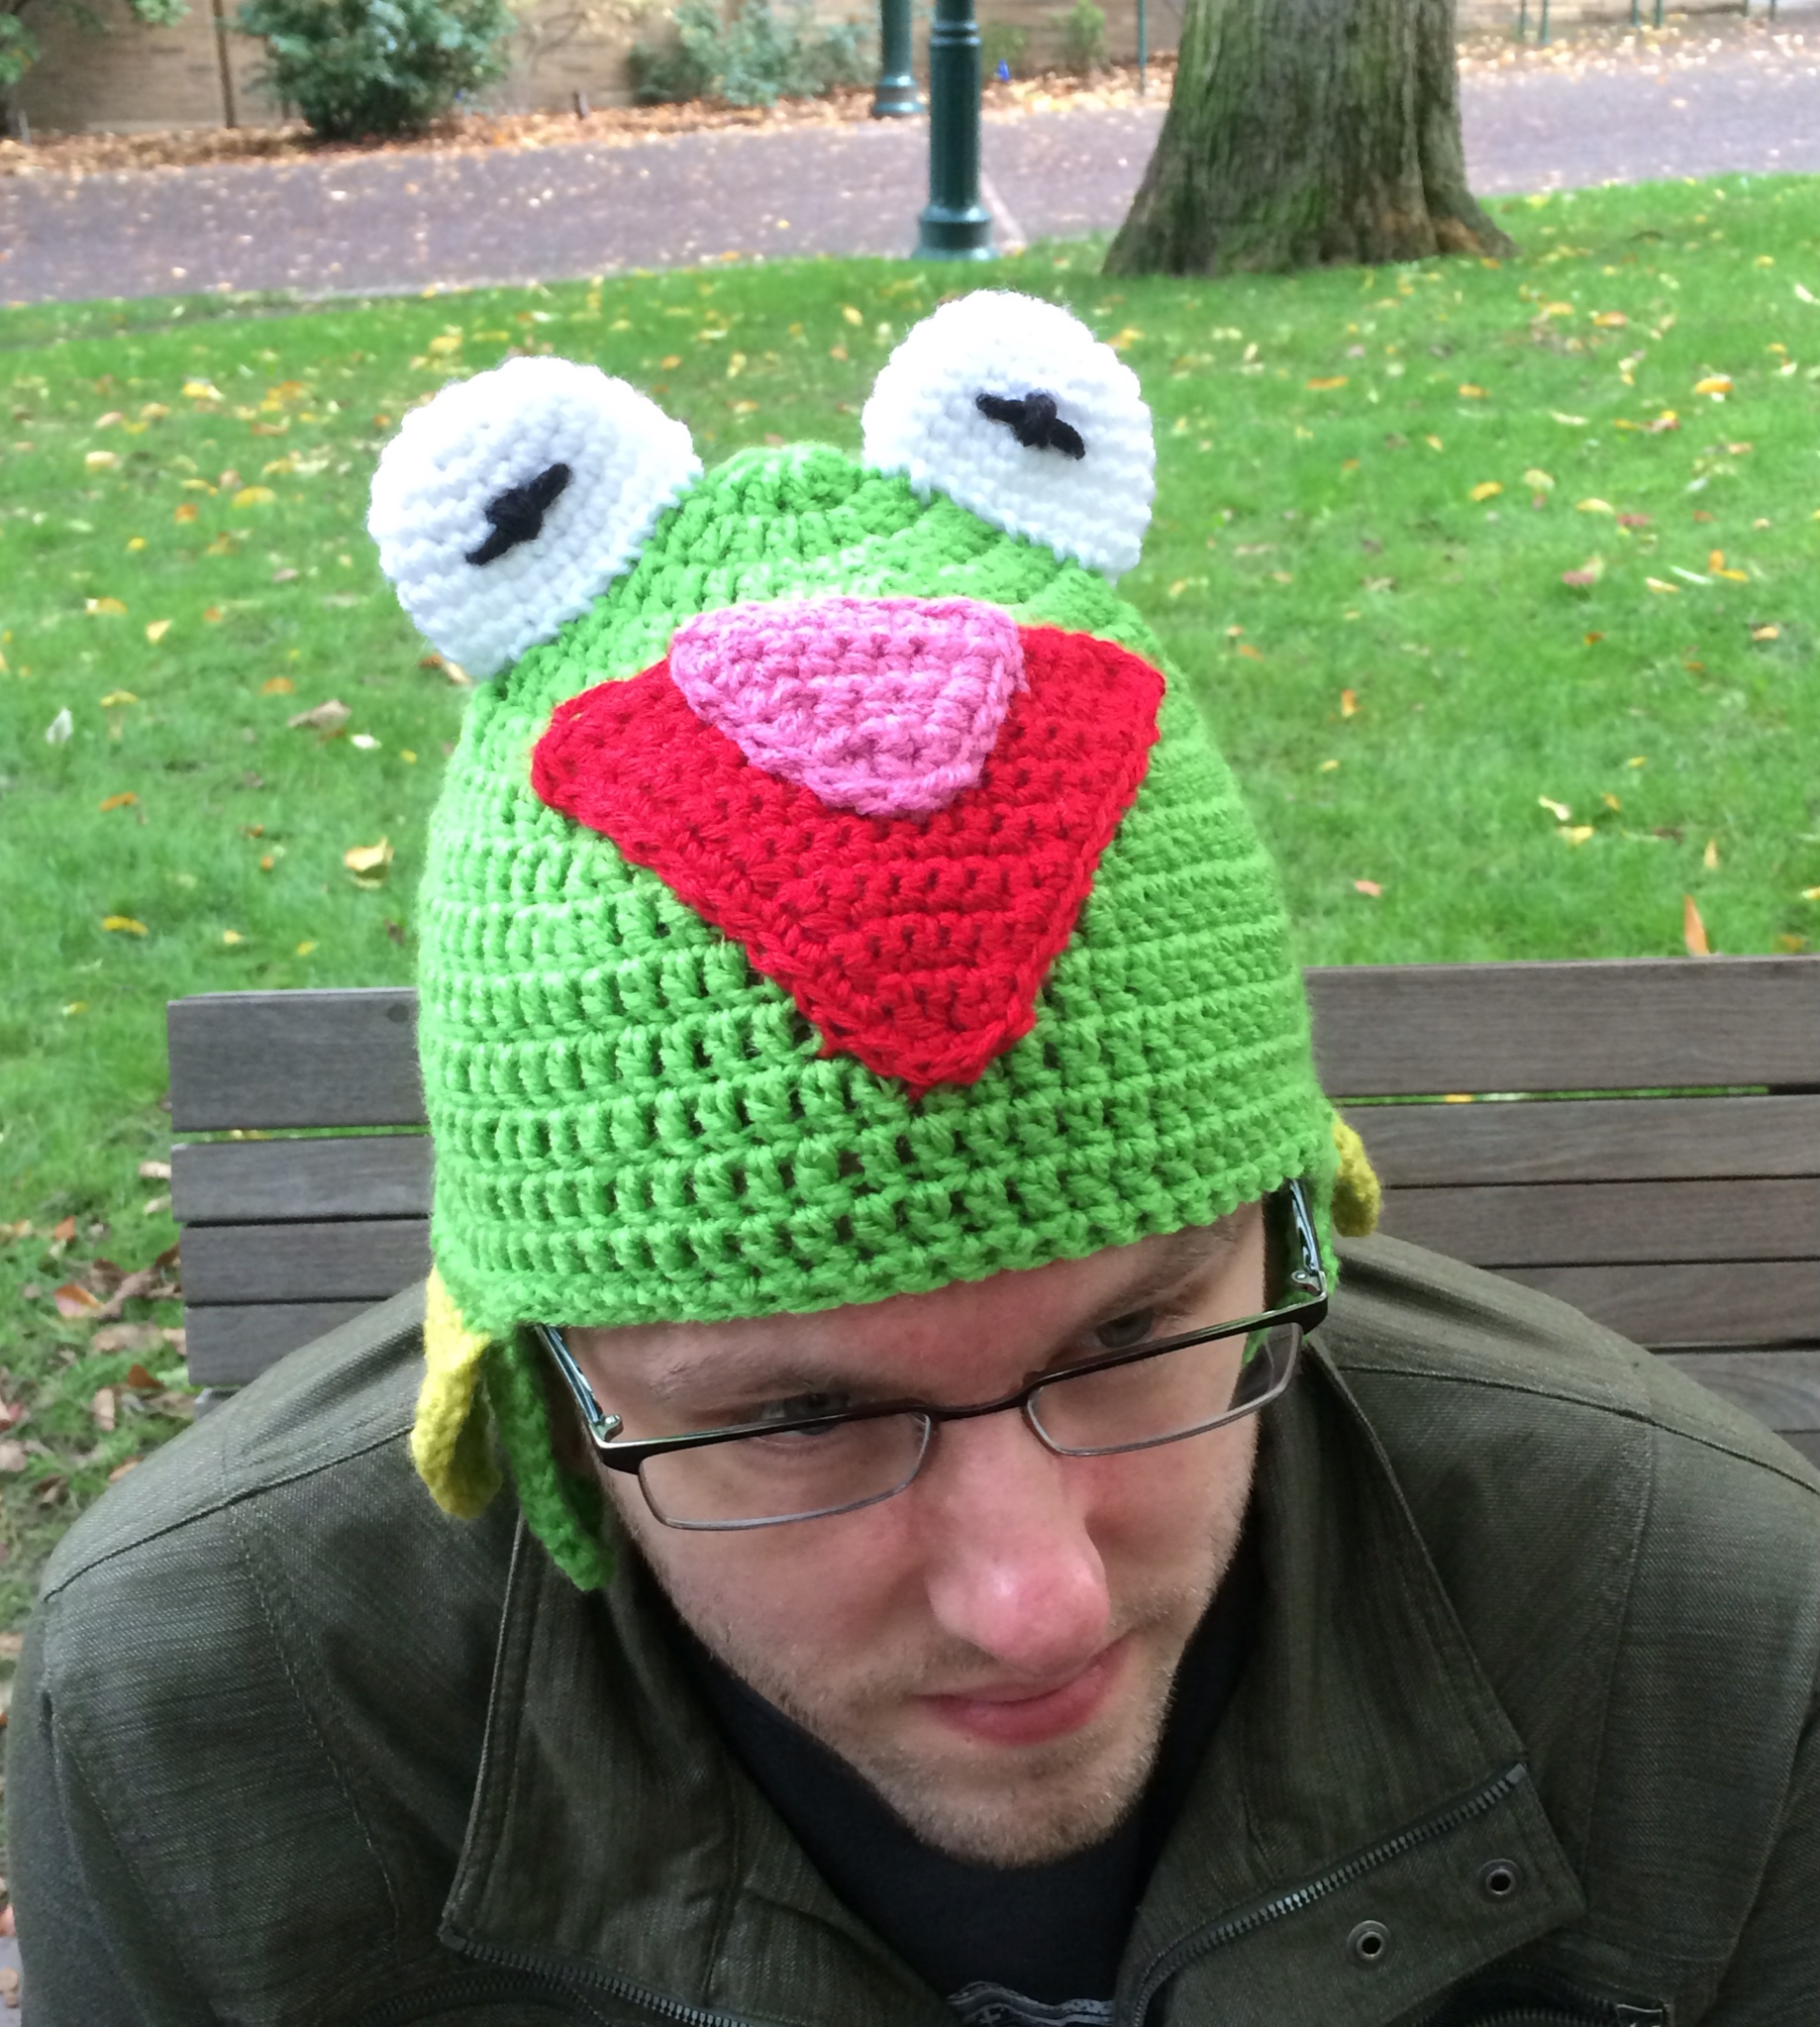 Free Crochet Pattern For Kermit The Frog Hat : Kermit the frog crochet hat pattern Bowties and fezzes